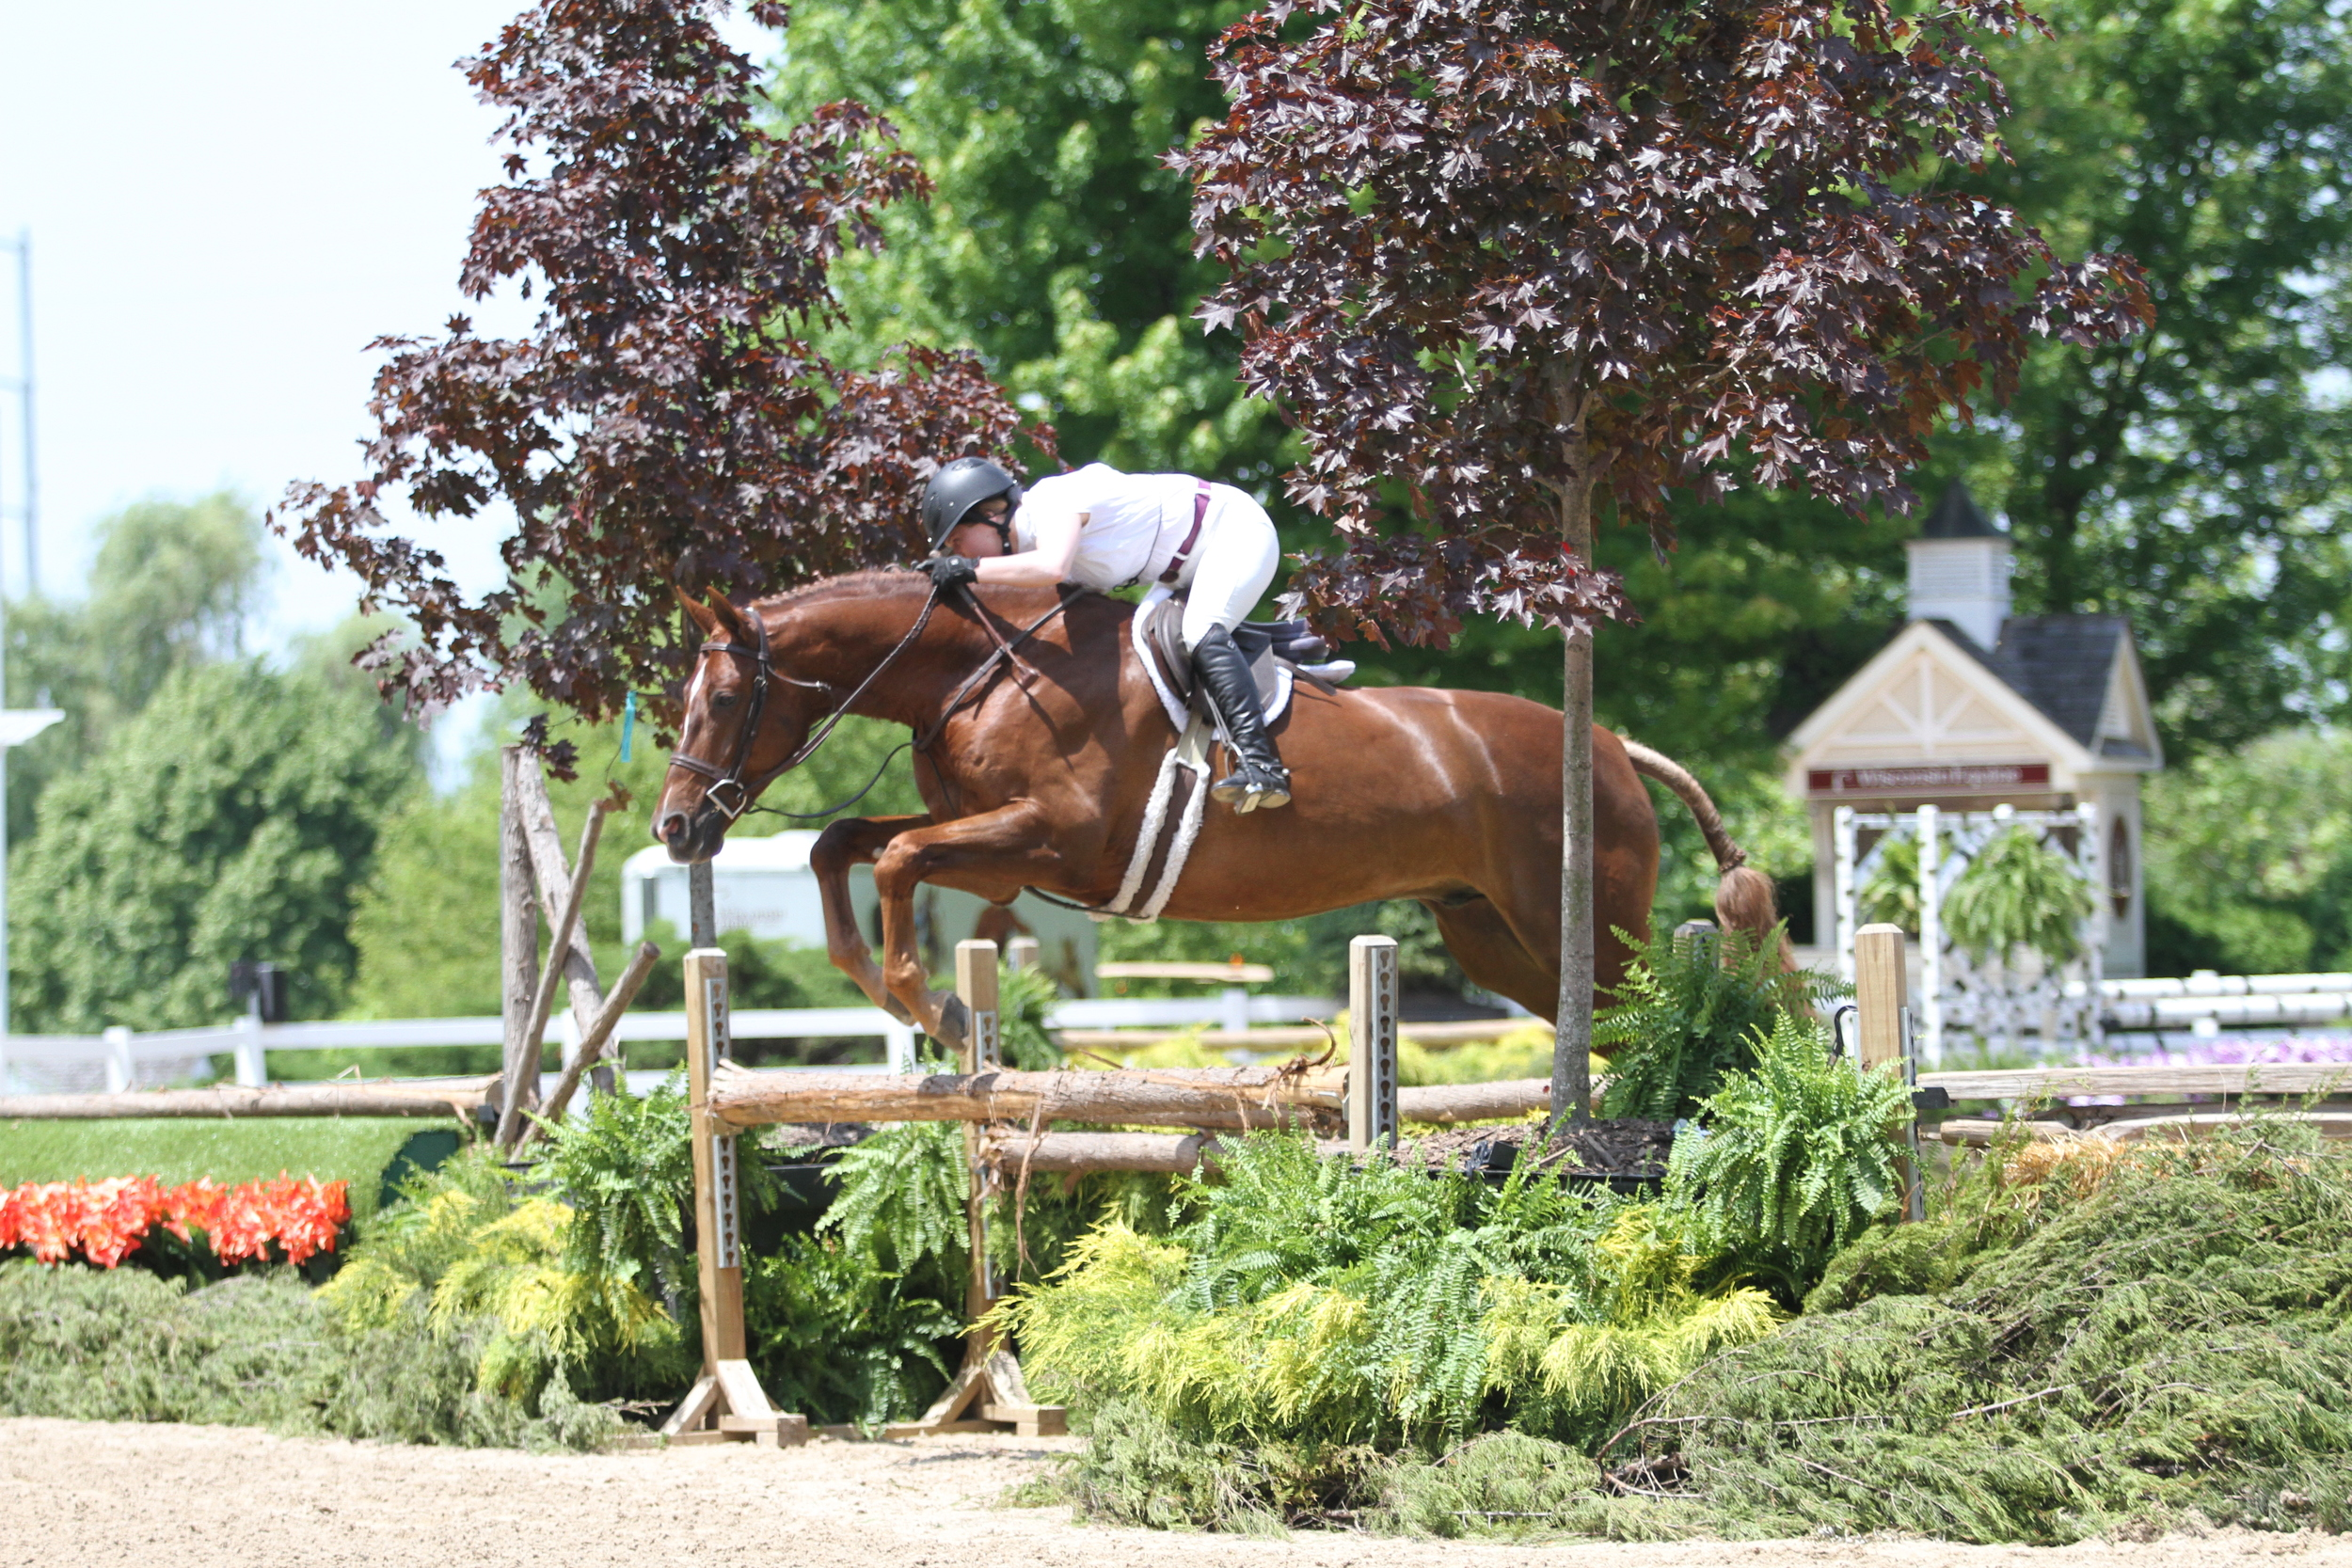 """Amateur Owner 3'3"""" leader    Heading into the final rounds tomorrow, Topaz, owned by Pony Lane Farm and ridden by Kelsey Thatcher, holds a top position with a win in the over fences and hunter under saddle classes."""